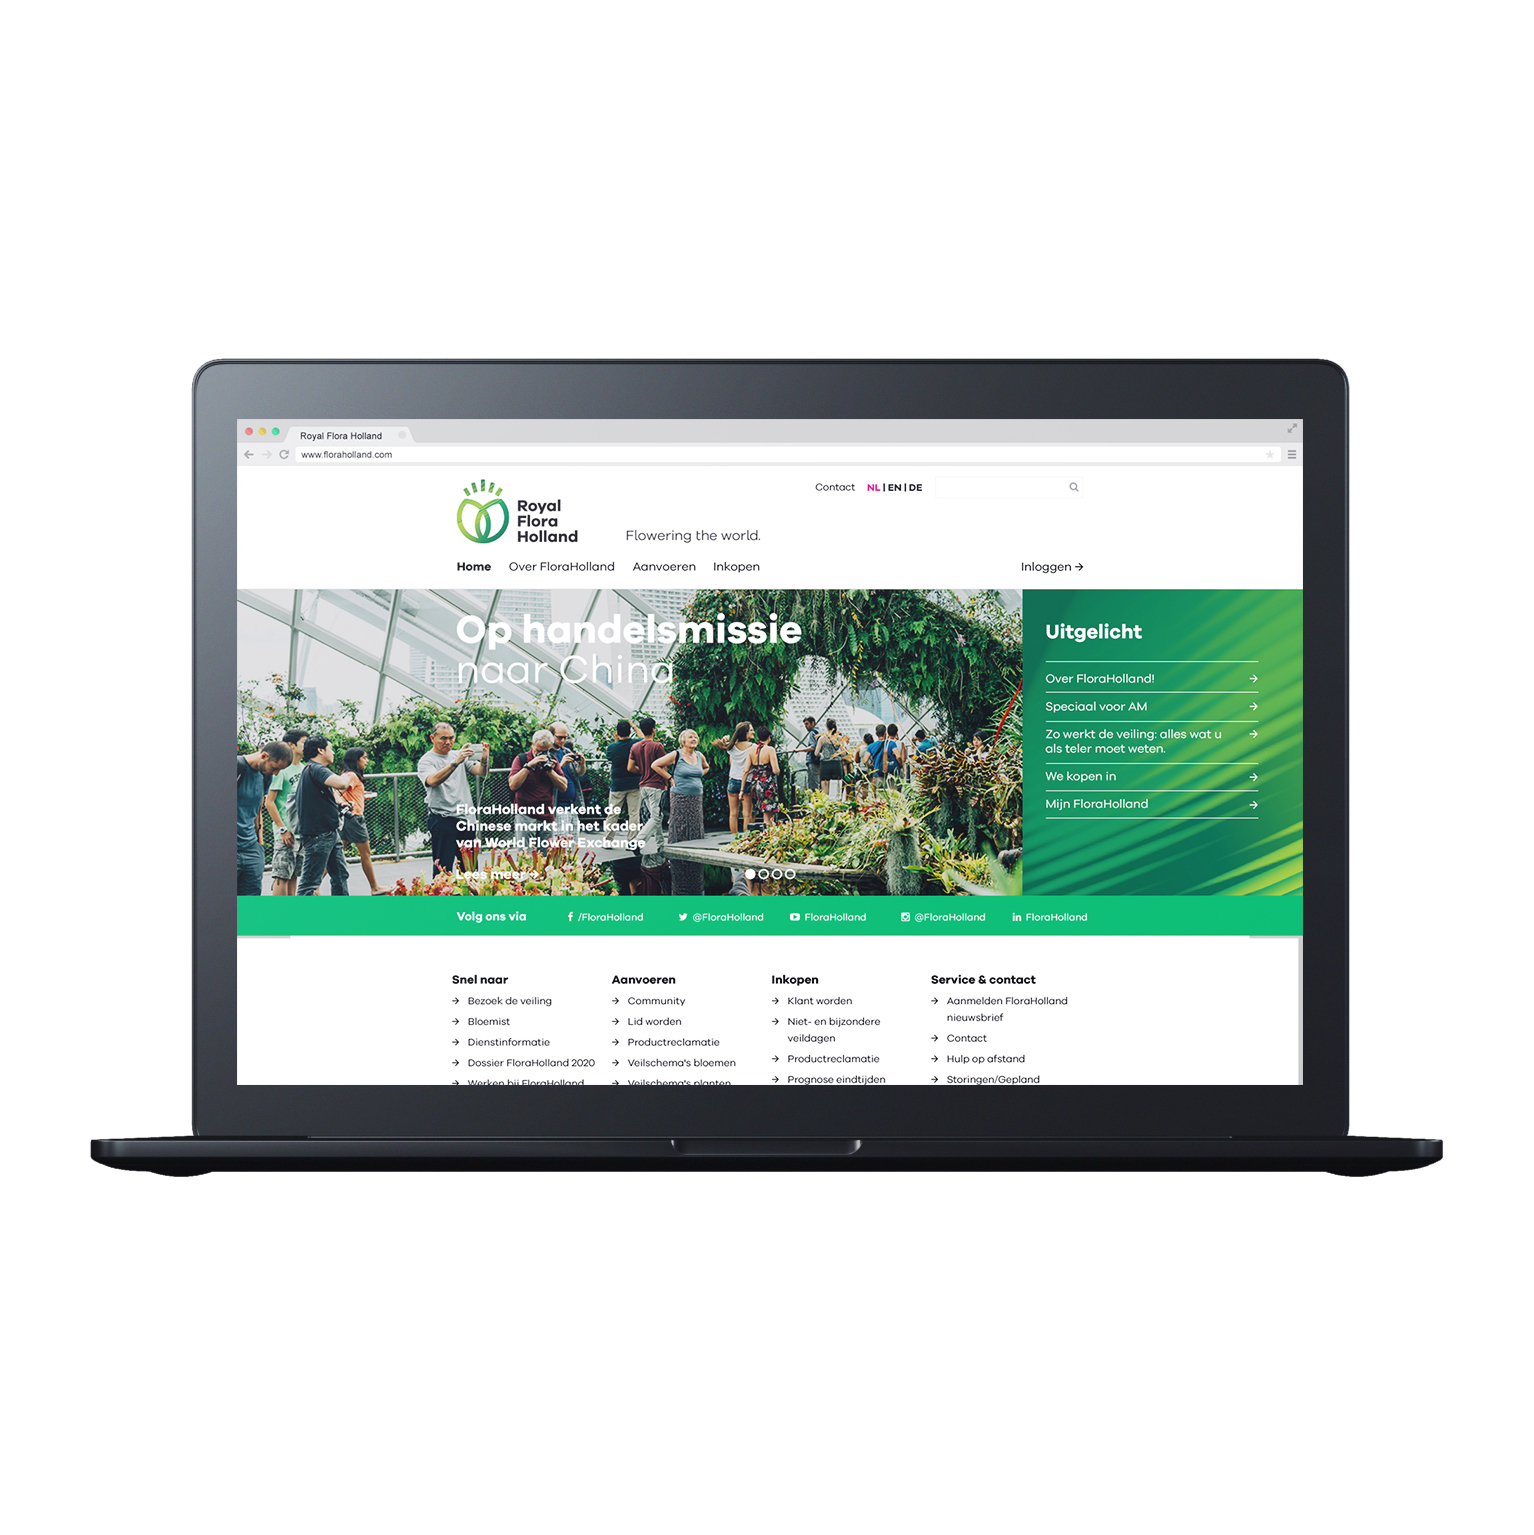 RoyalFloraHolland-WebsiteDesign